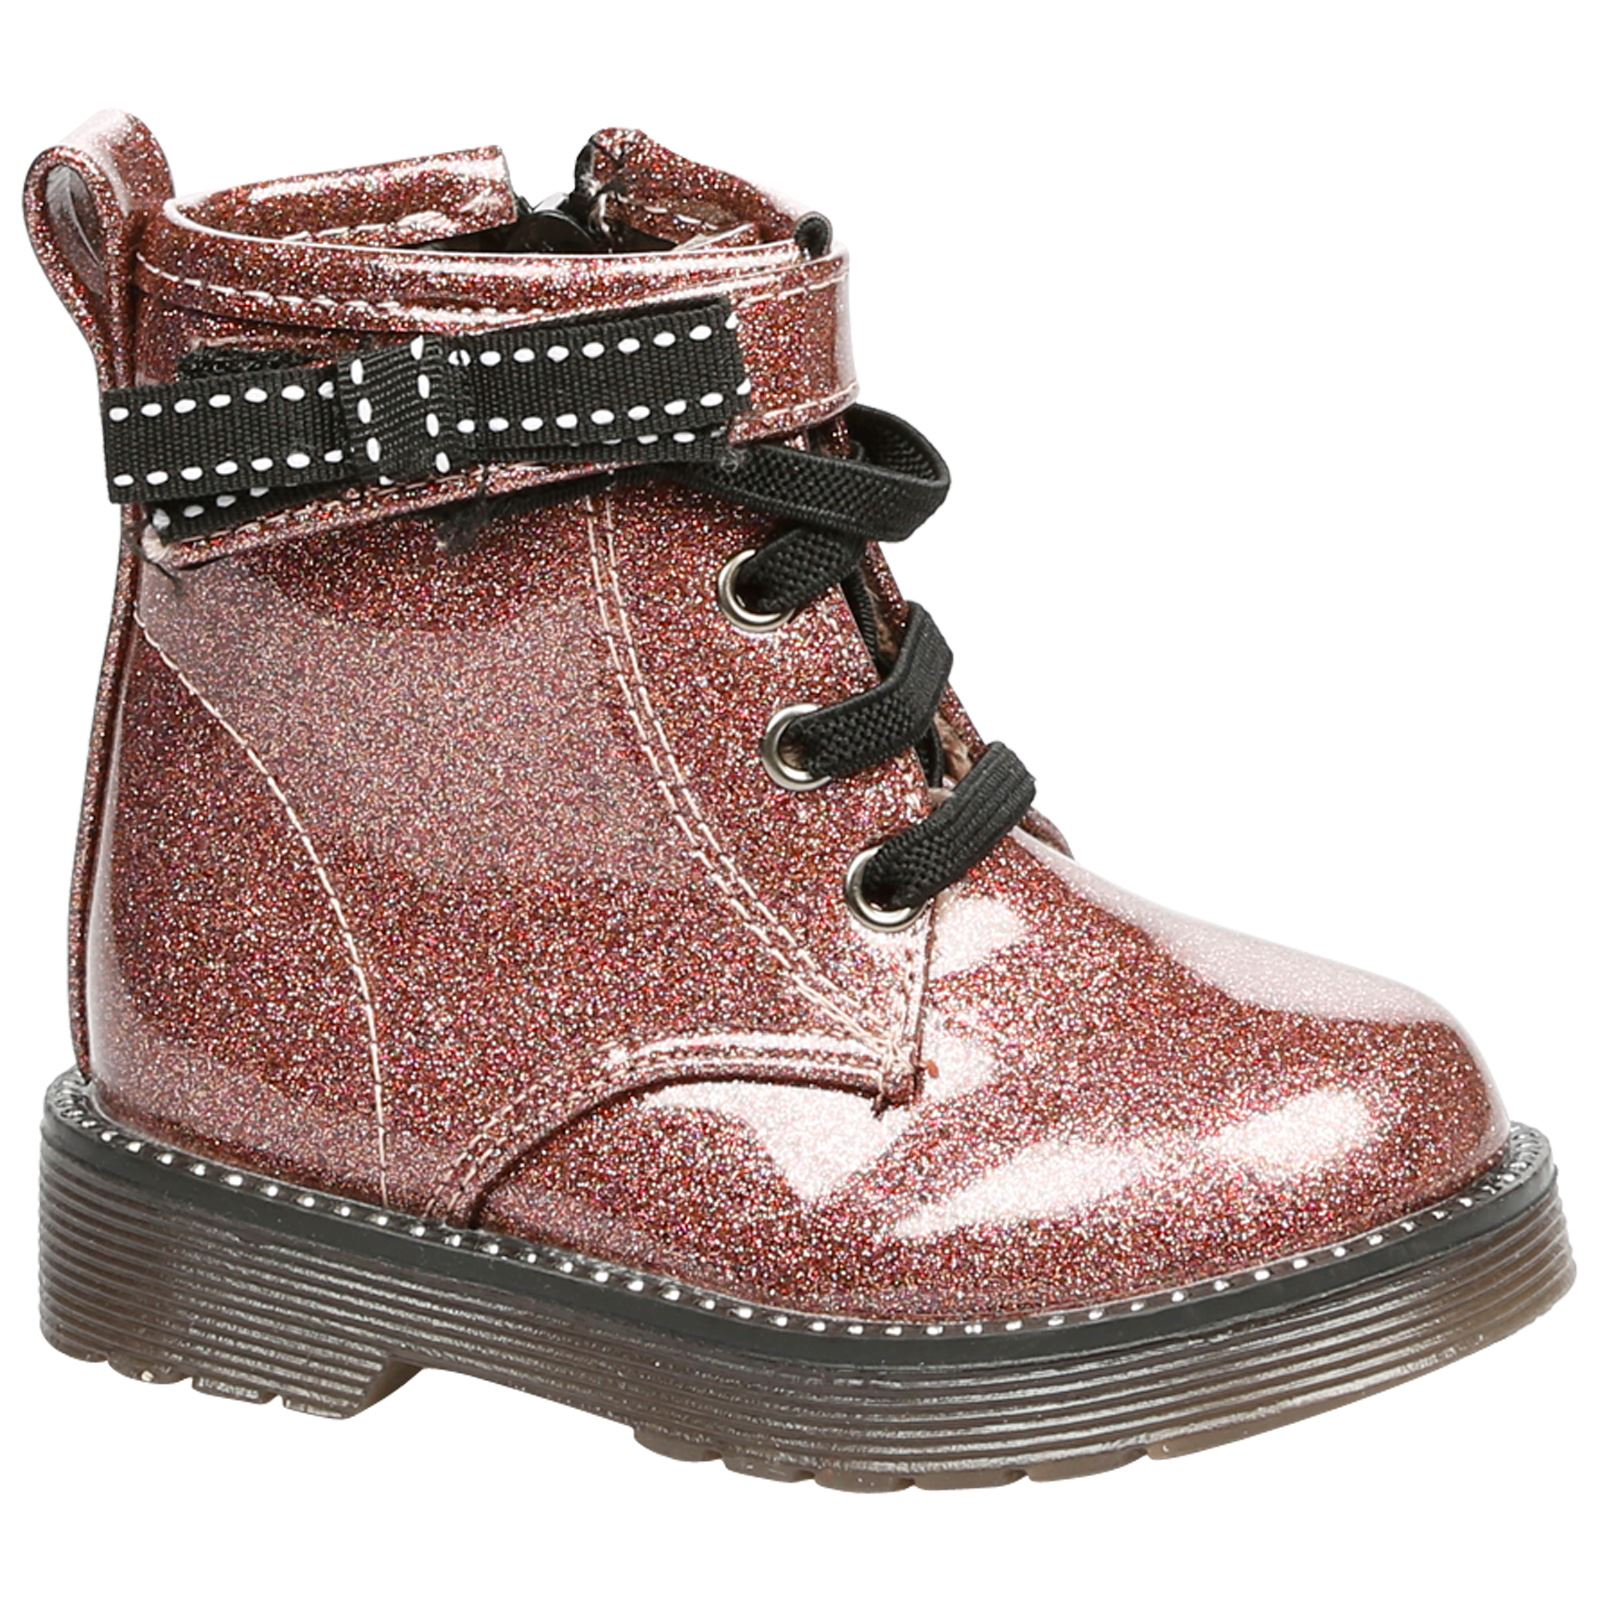 Alexis Girls Toddlers Flats Low Heels Glitter Sparkle Lace Up Ankle Boots Shoes